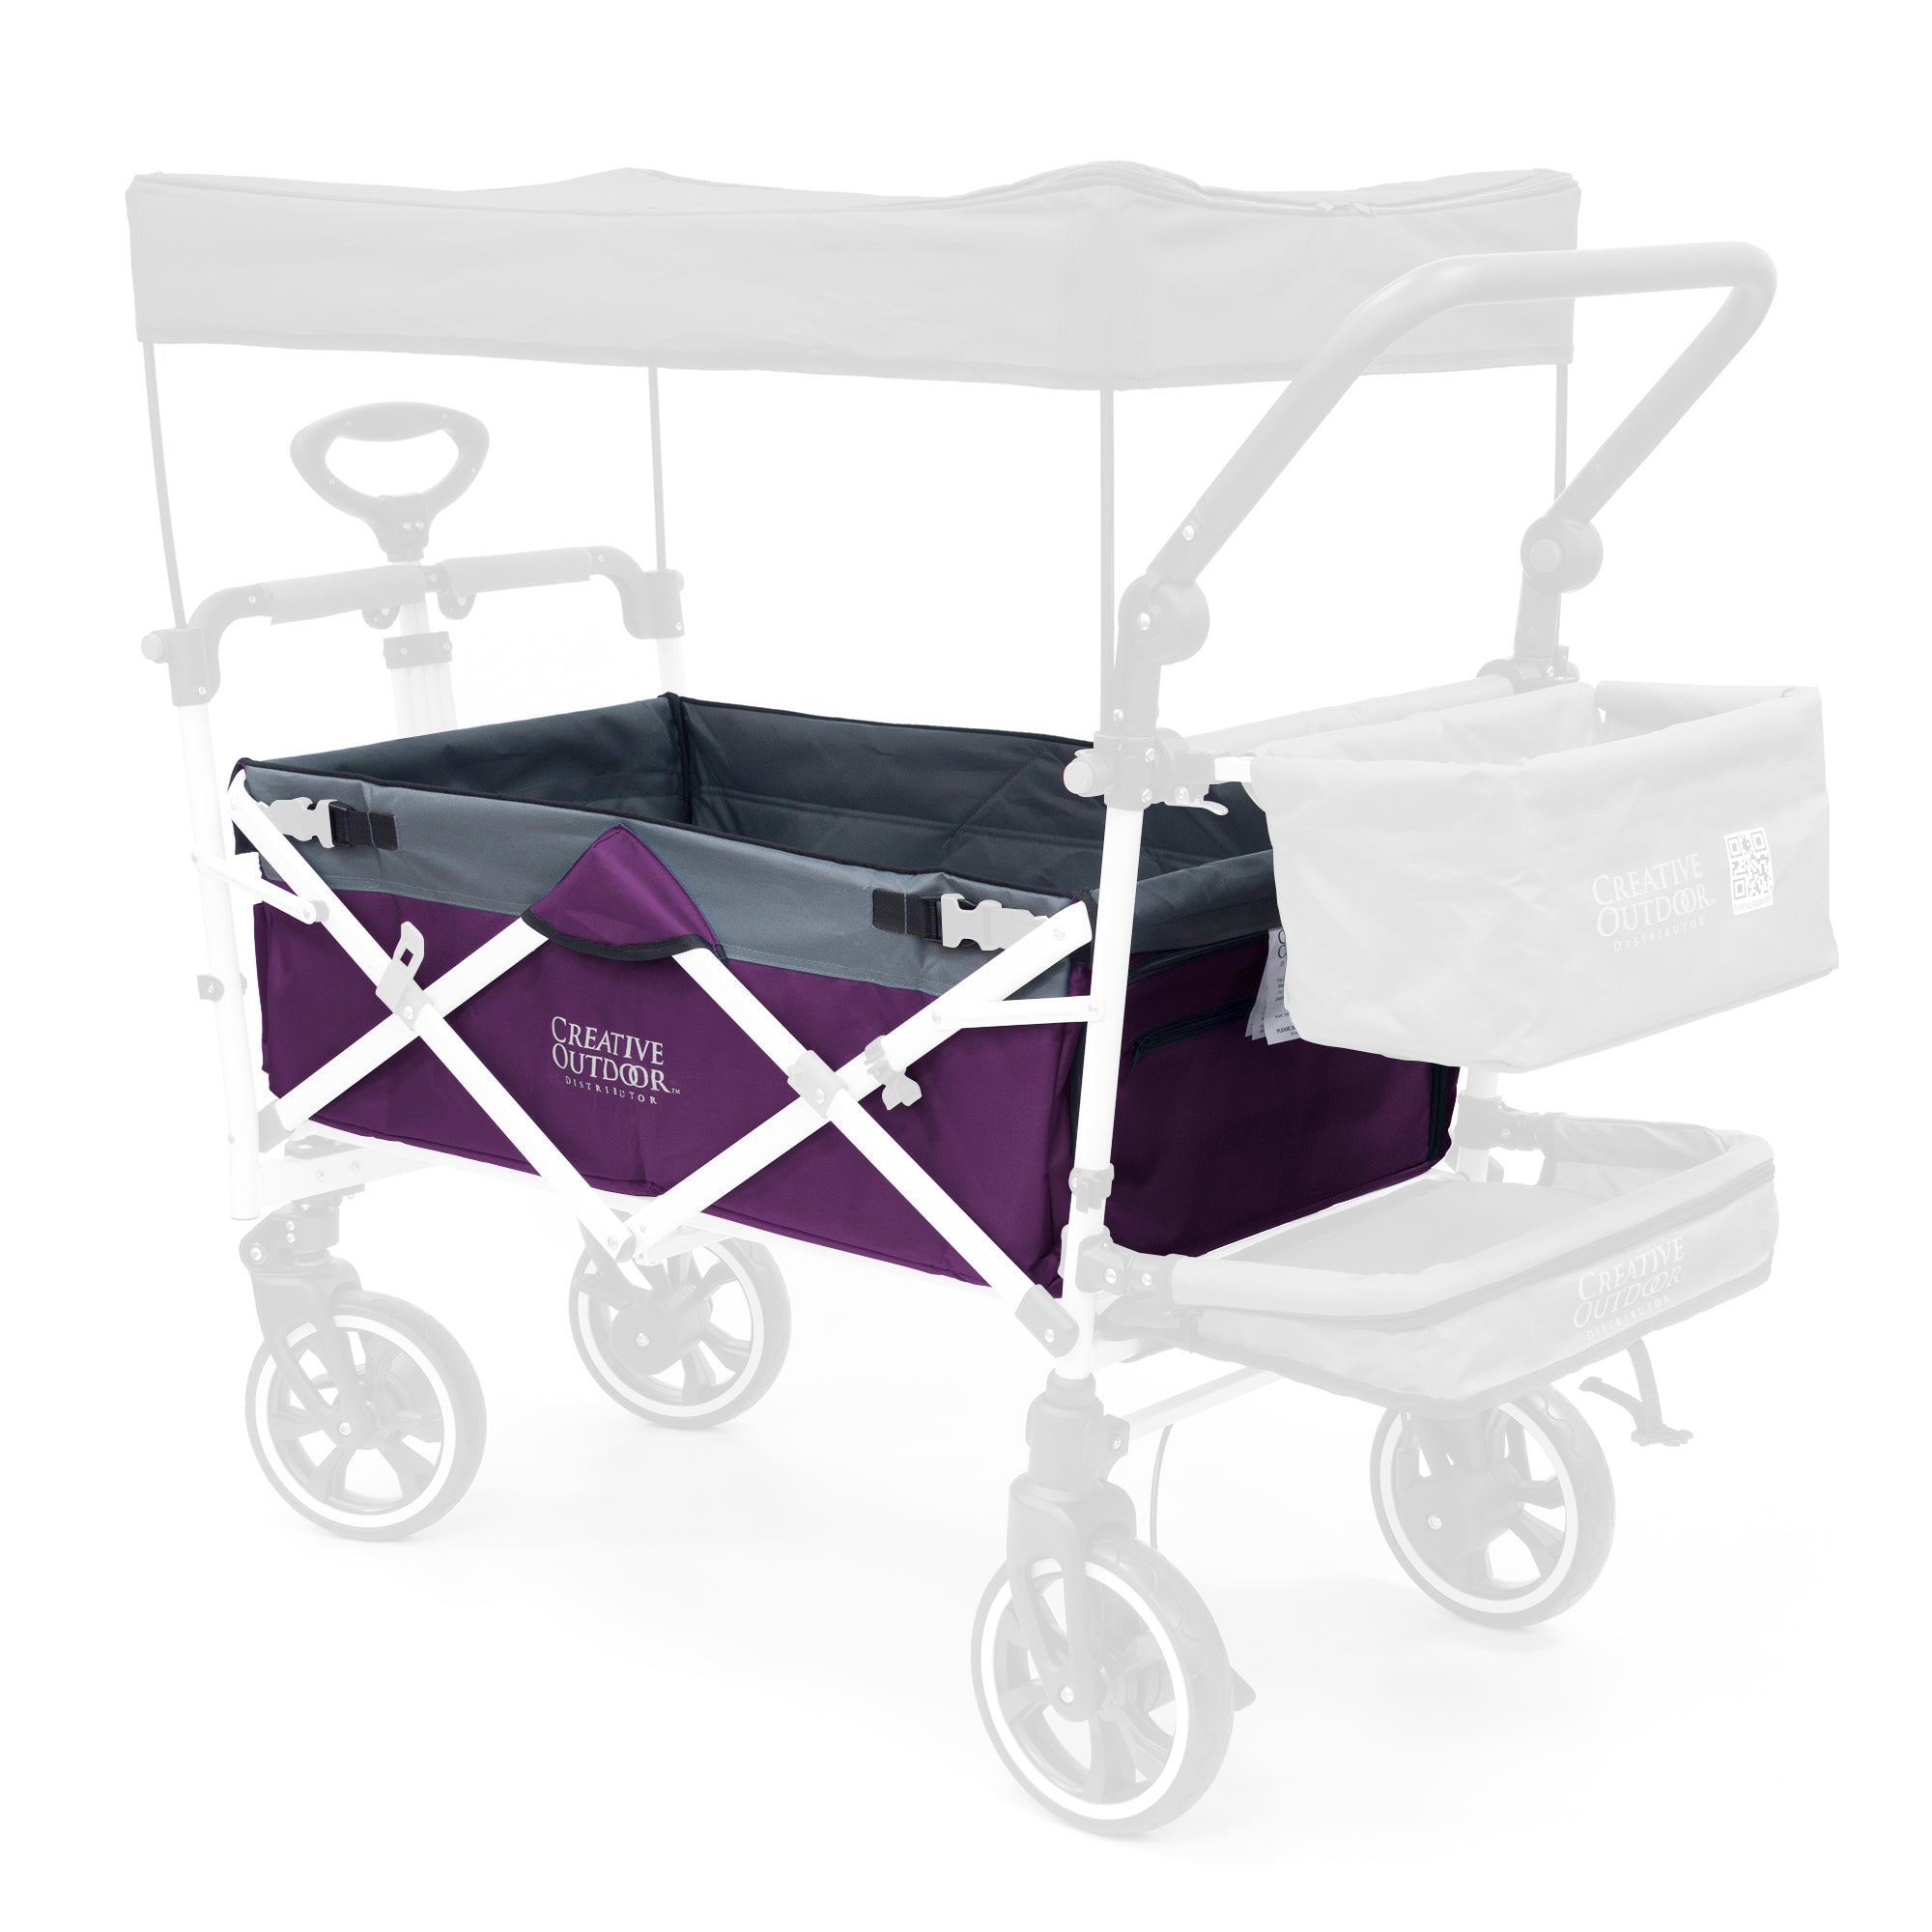 Push Pull Folding Wagon Body Fabric Replacement | Each